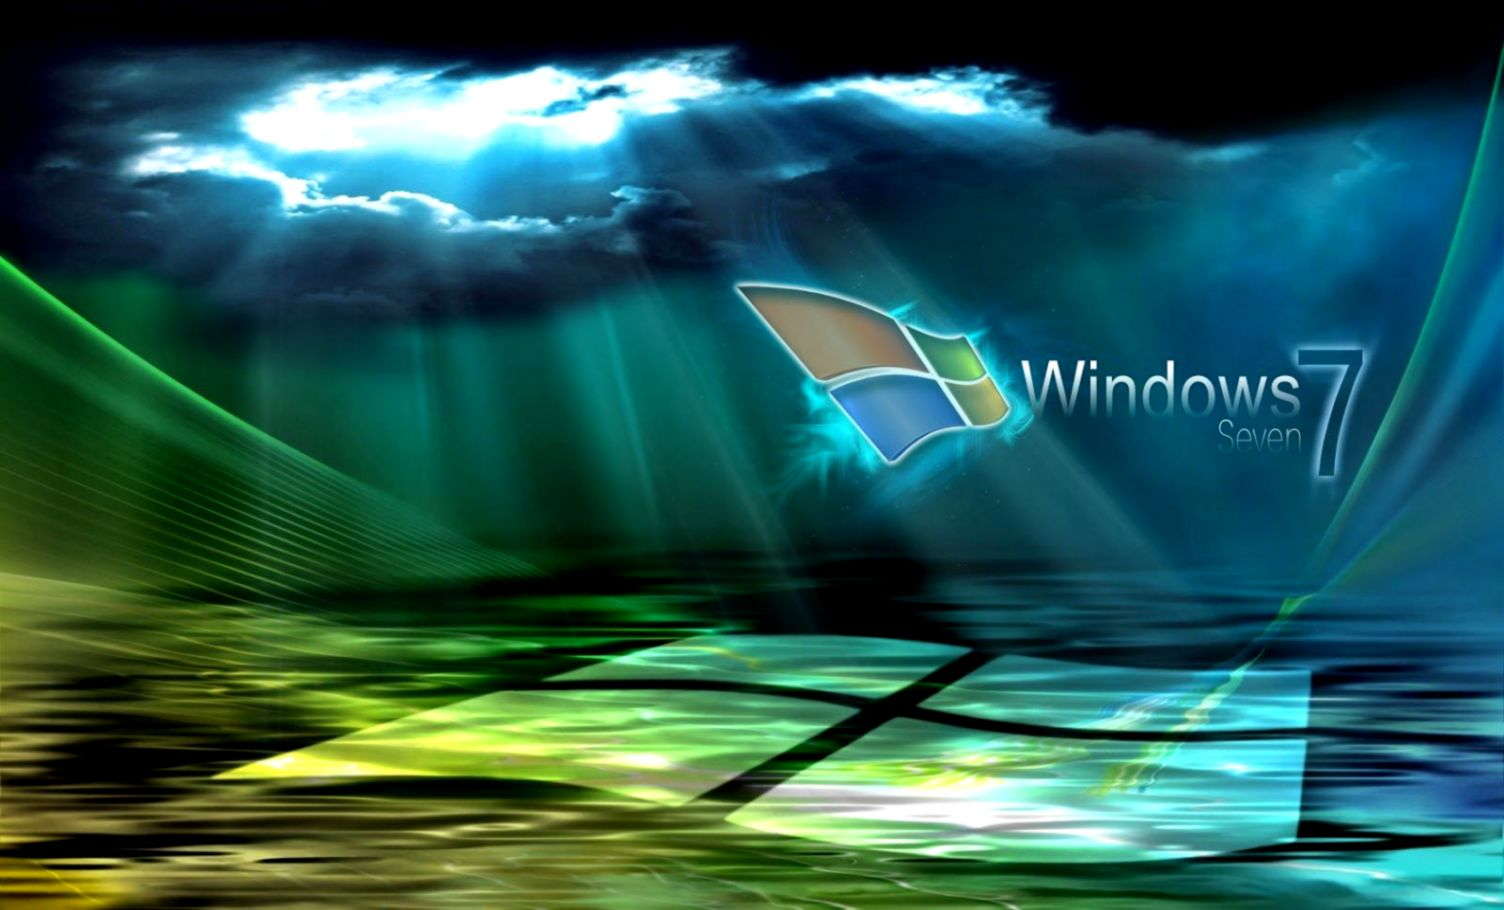 Live Wallpaper For Pc Windows 7 Free Download | Wallpapers Arena